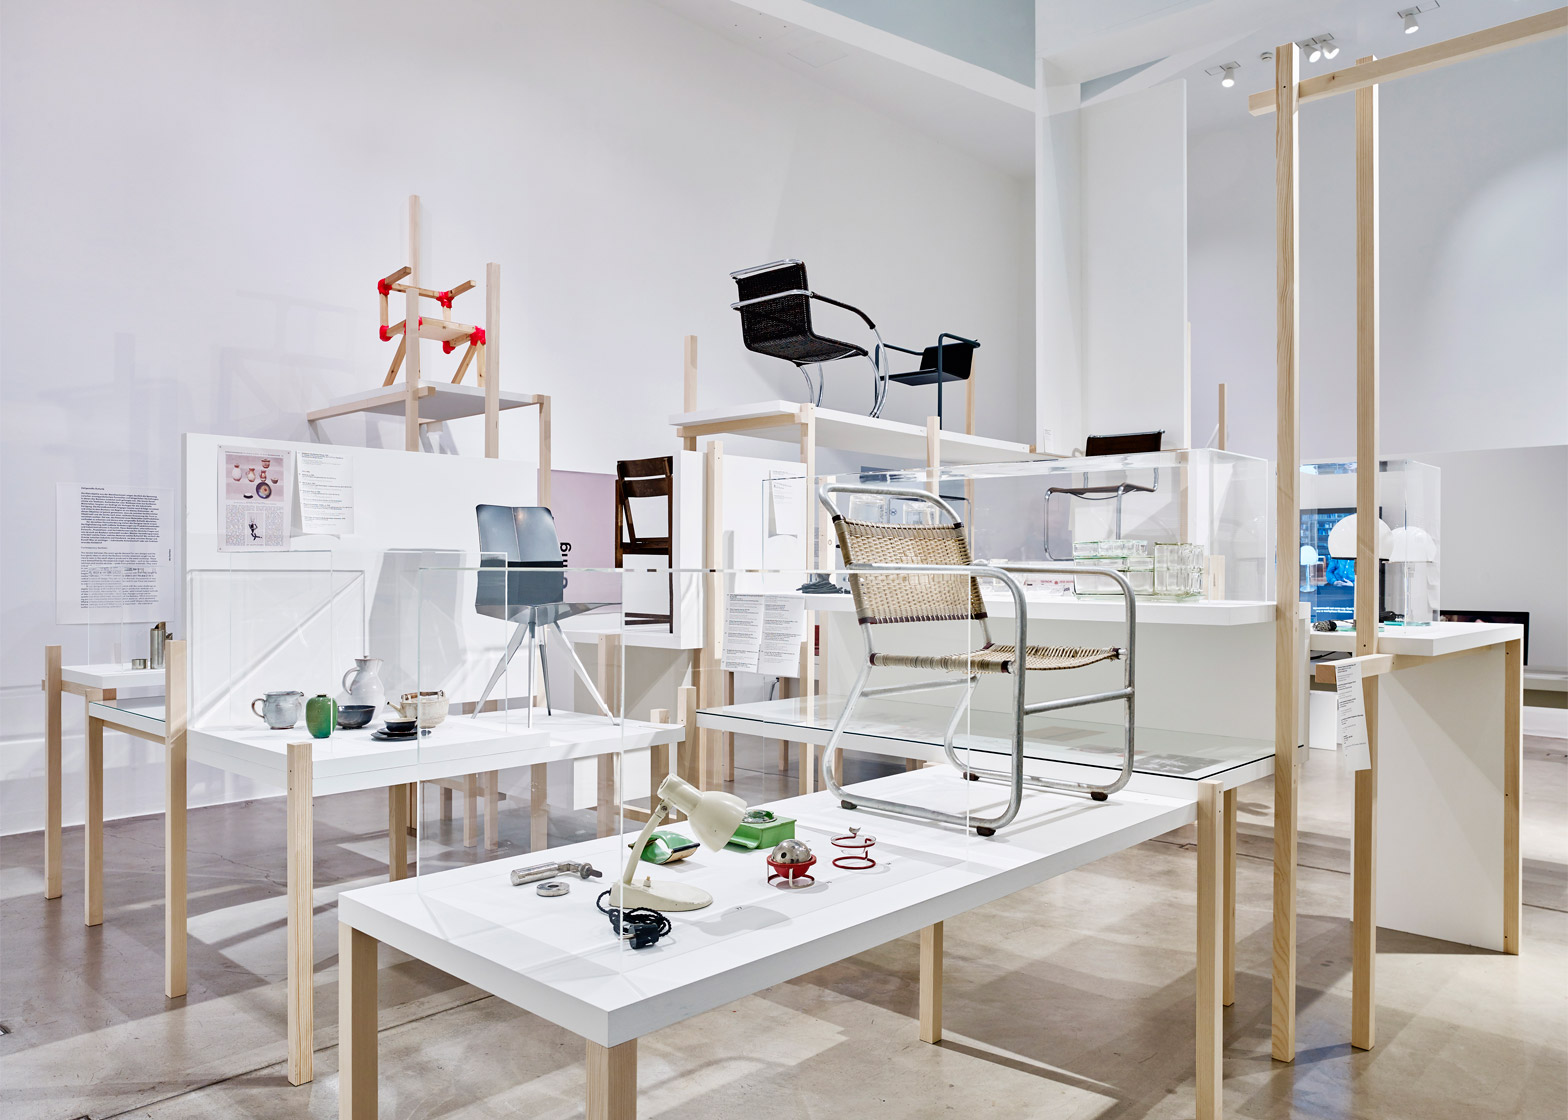 ... Bauhaus Retrospective At Vitra Design Museum